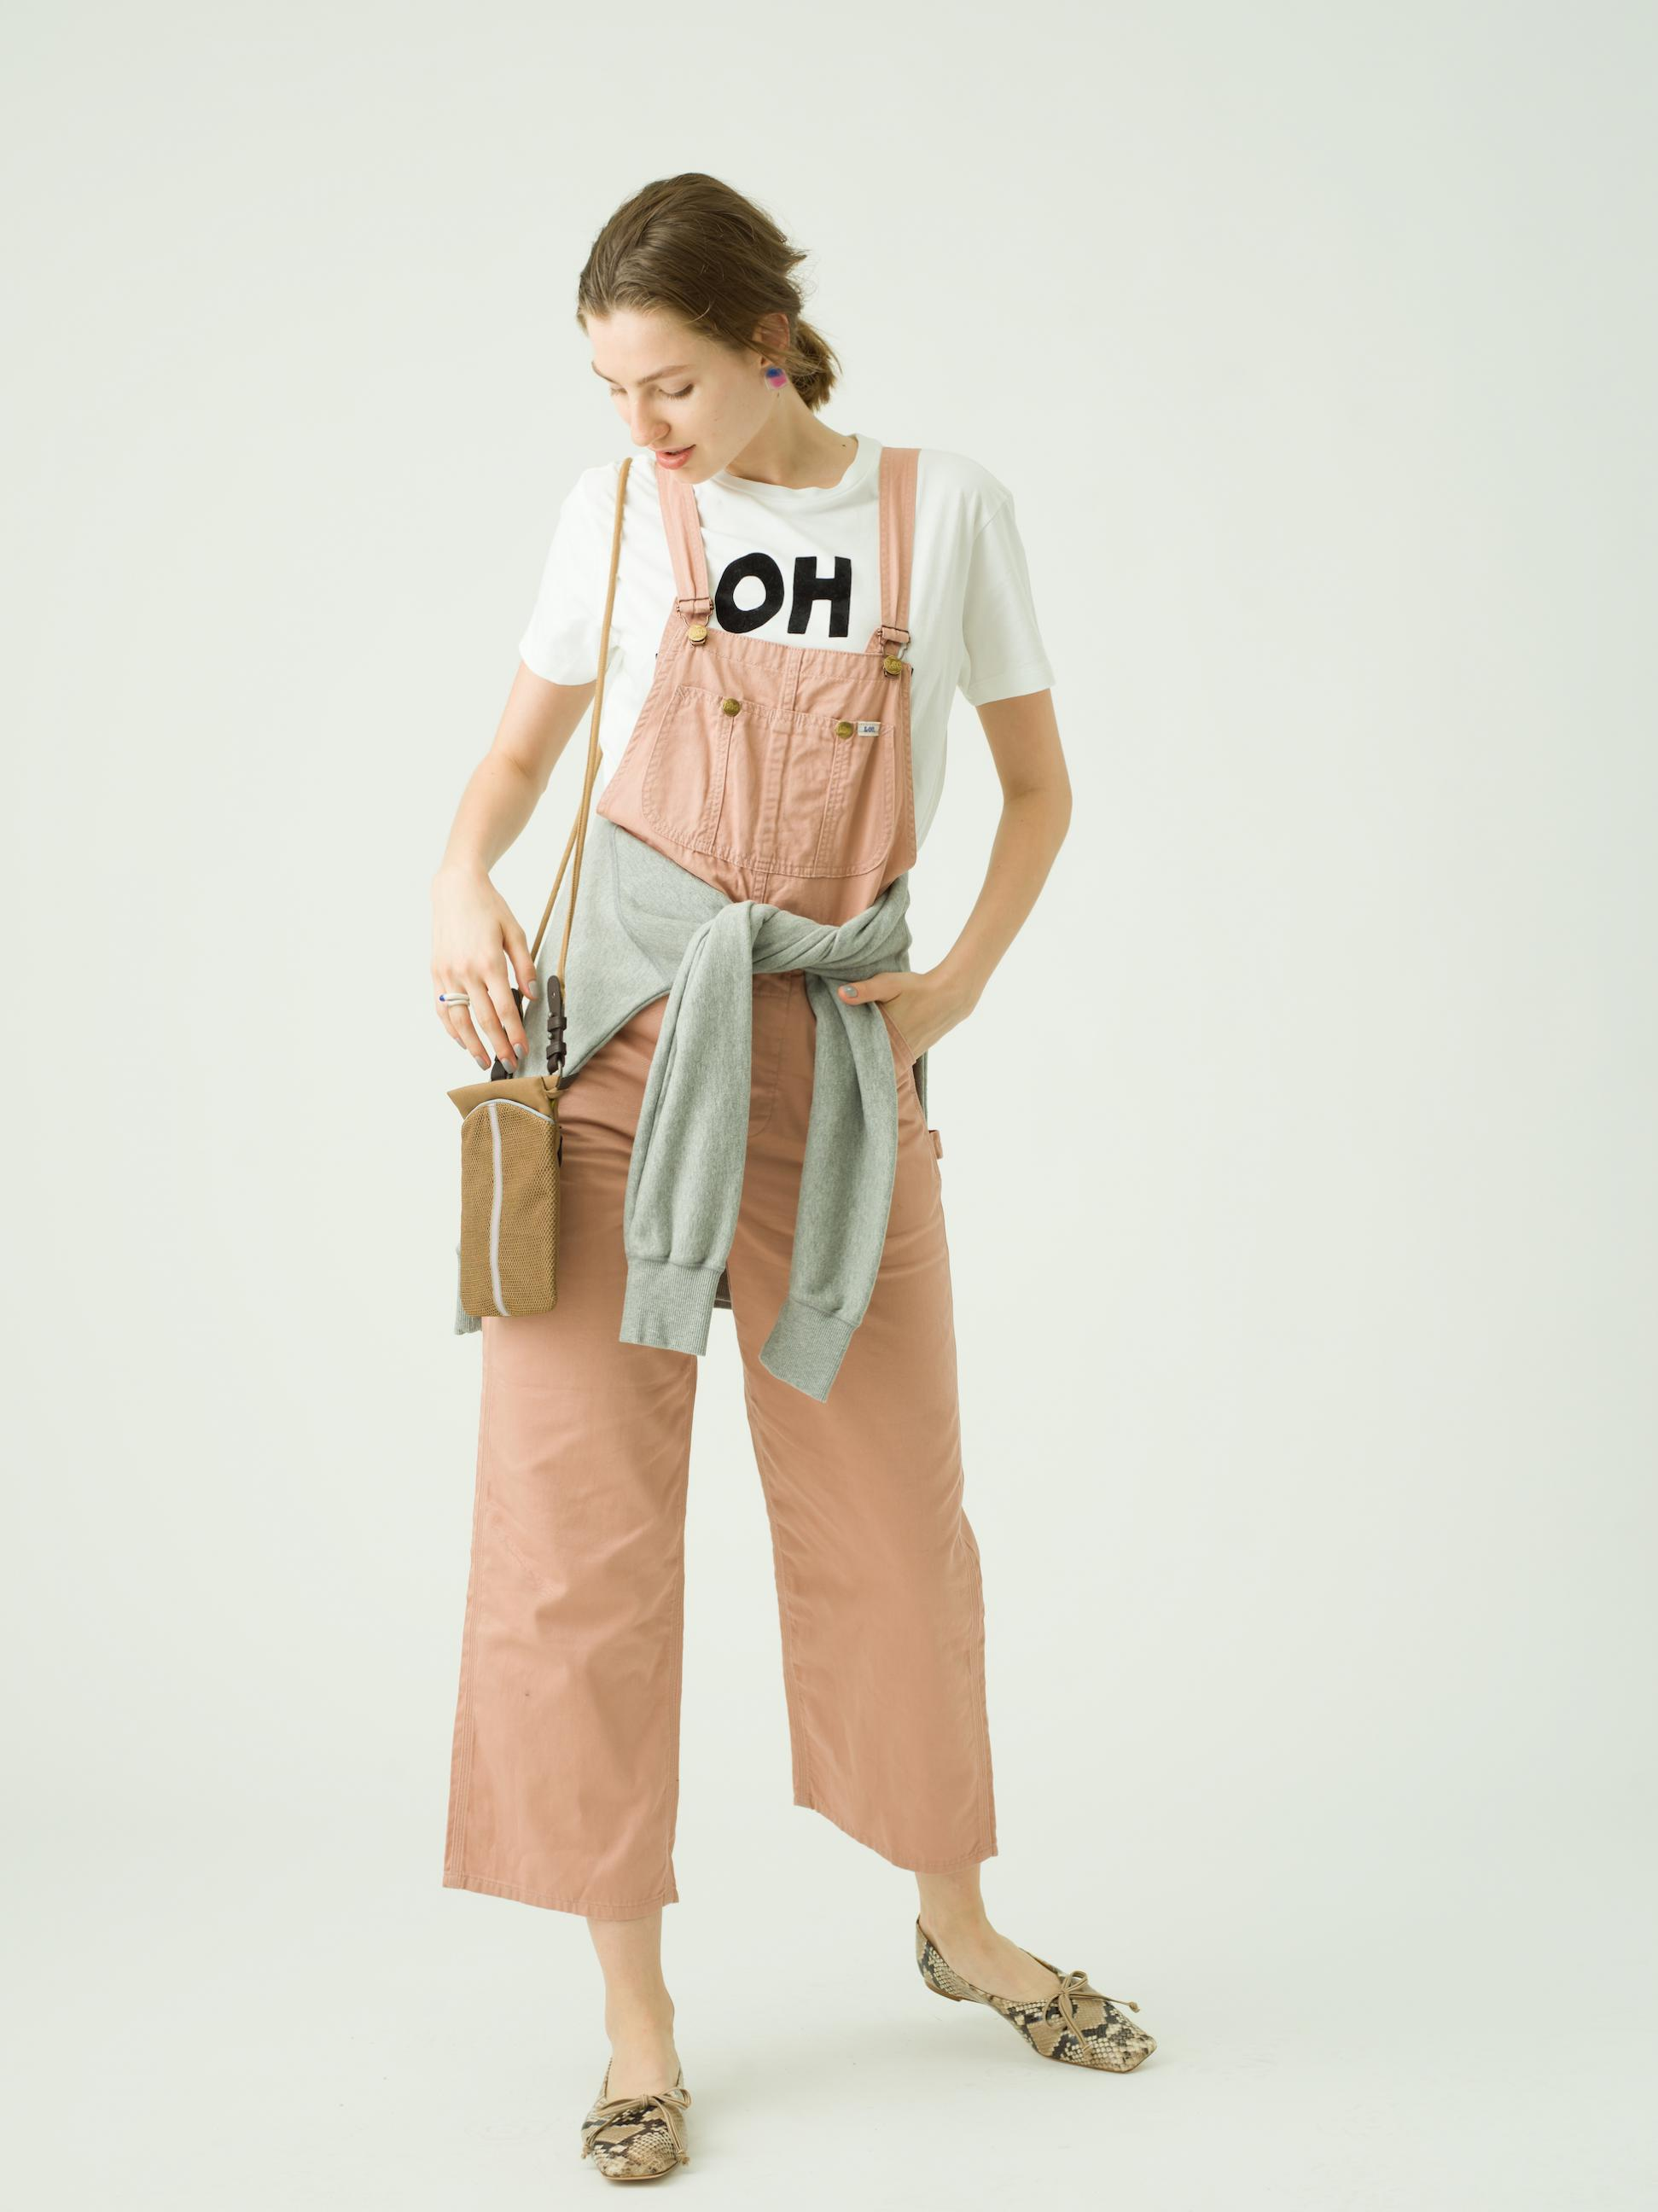 7_2 tops¥16,000  overall¥21,000  earring¥9,000  ring¥6,000  ring¥6,000  bag¥86,000  shoes¥37,000